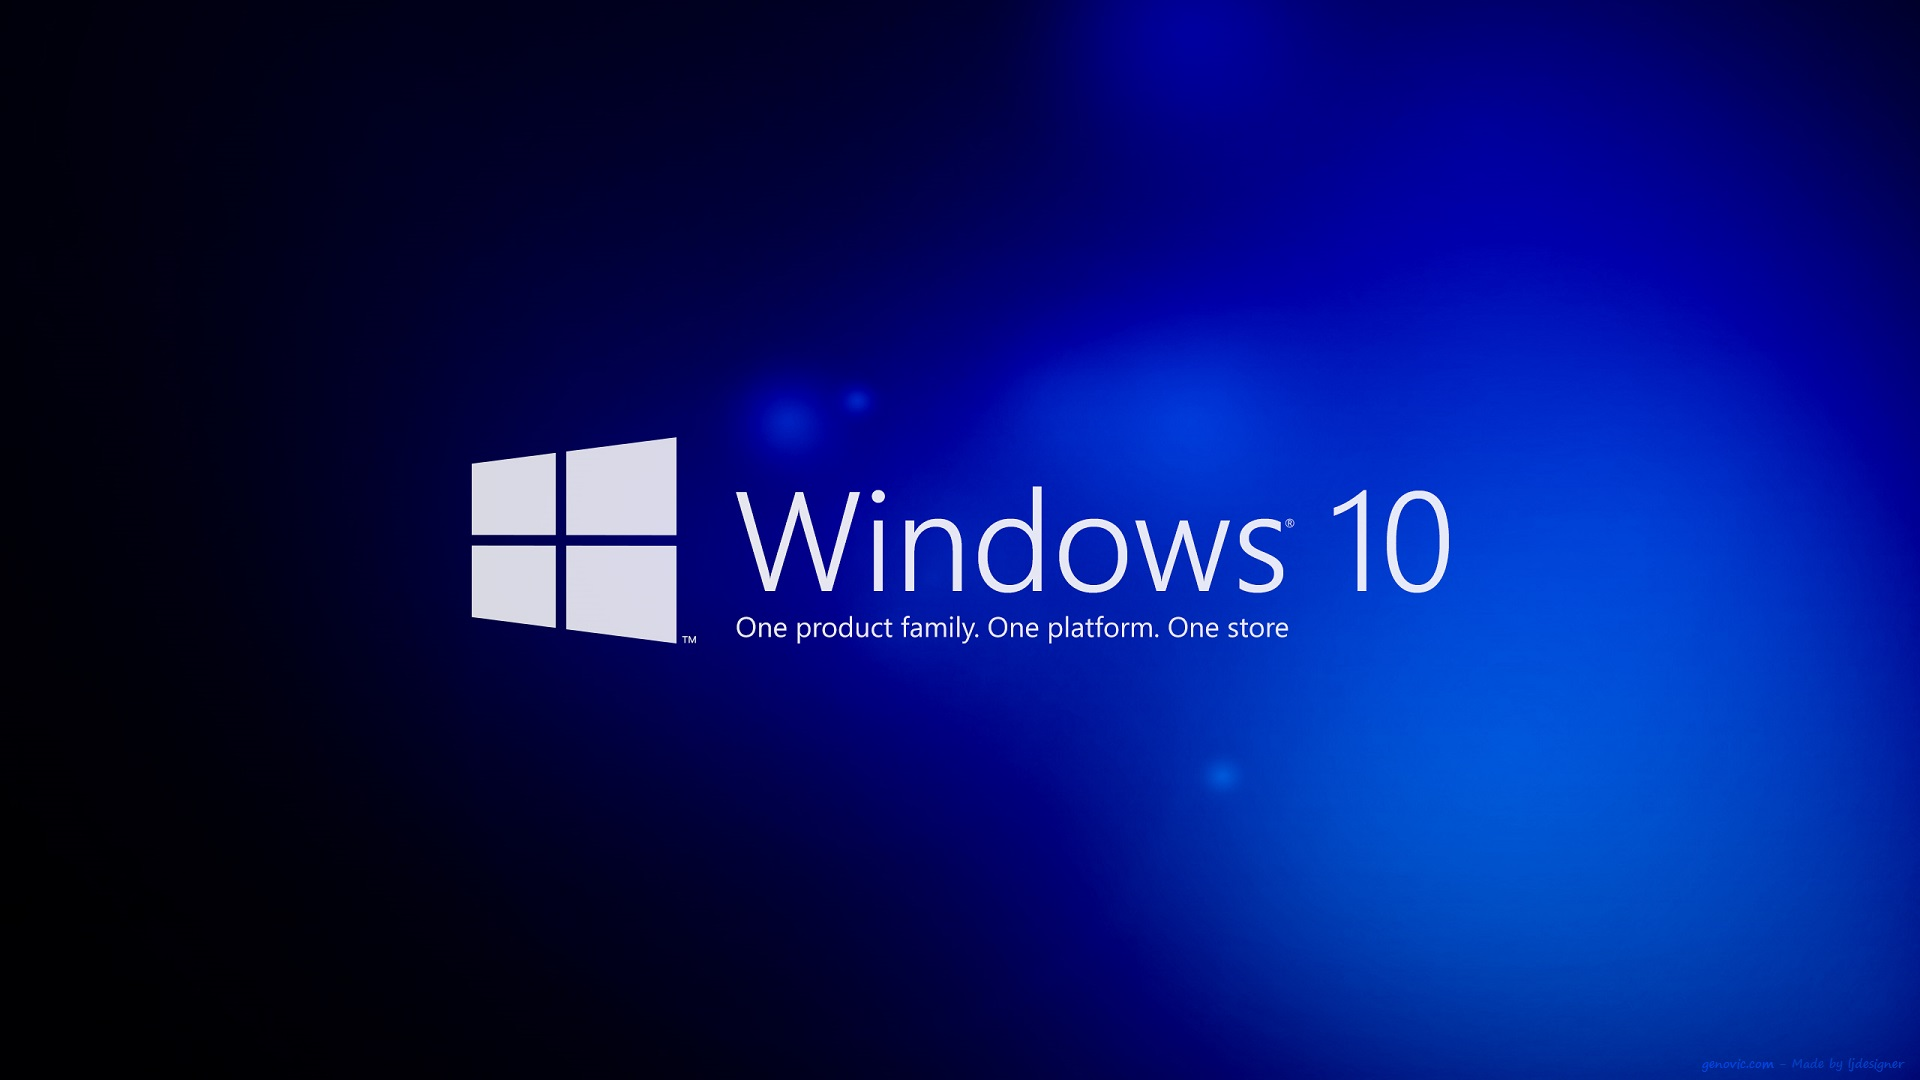 Microsoft Windows 10 Wallpaper Themes